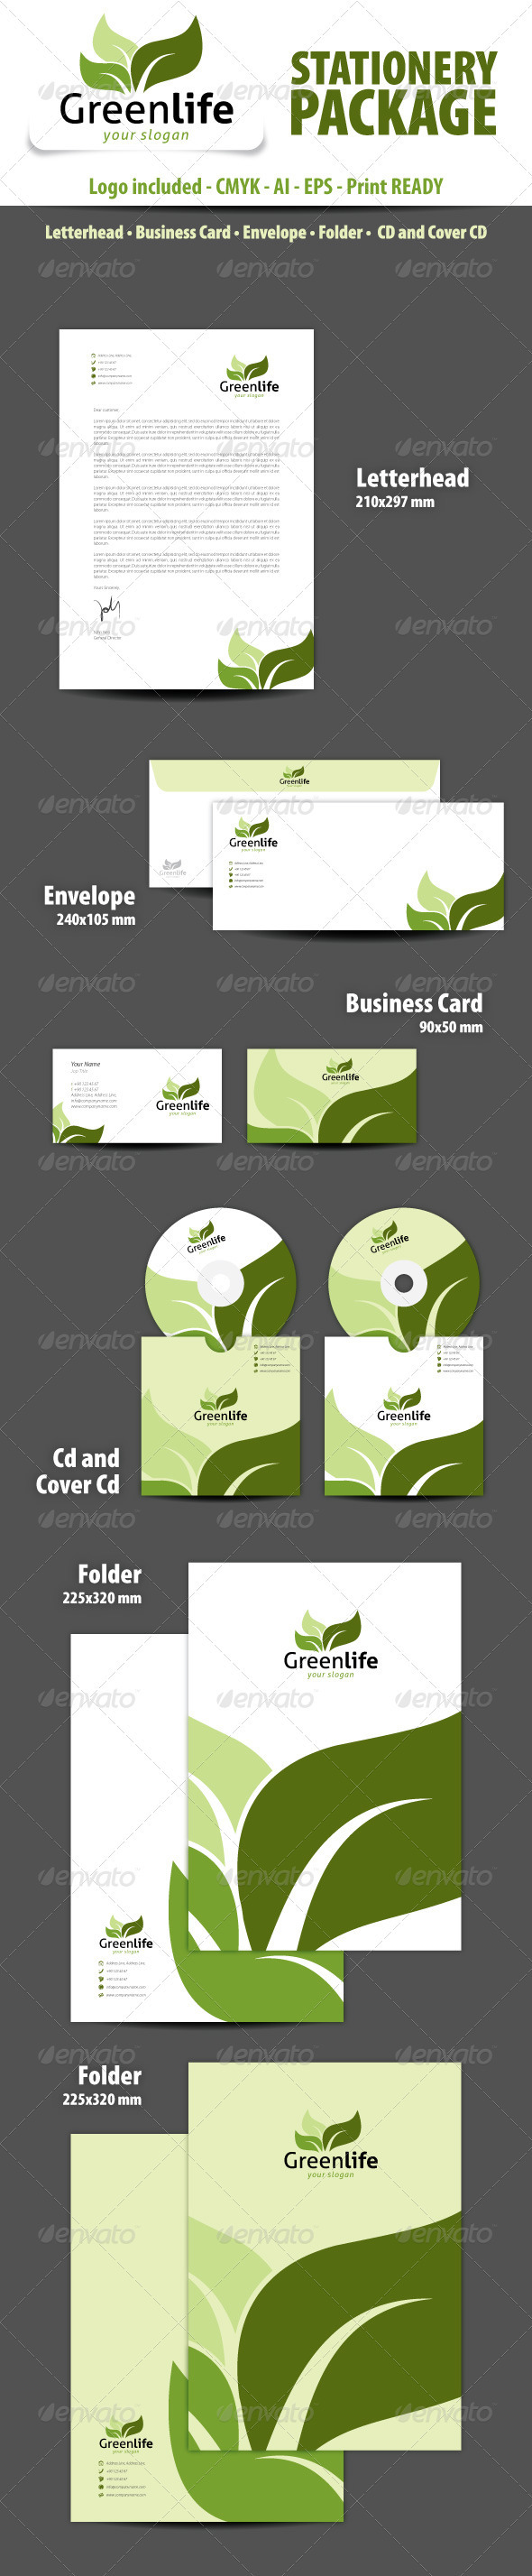 GraphicRiver Greenlife Stationery Package 3506379